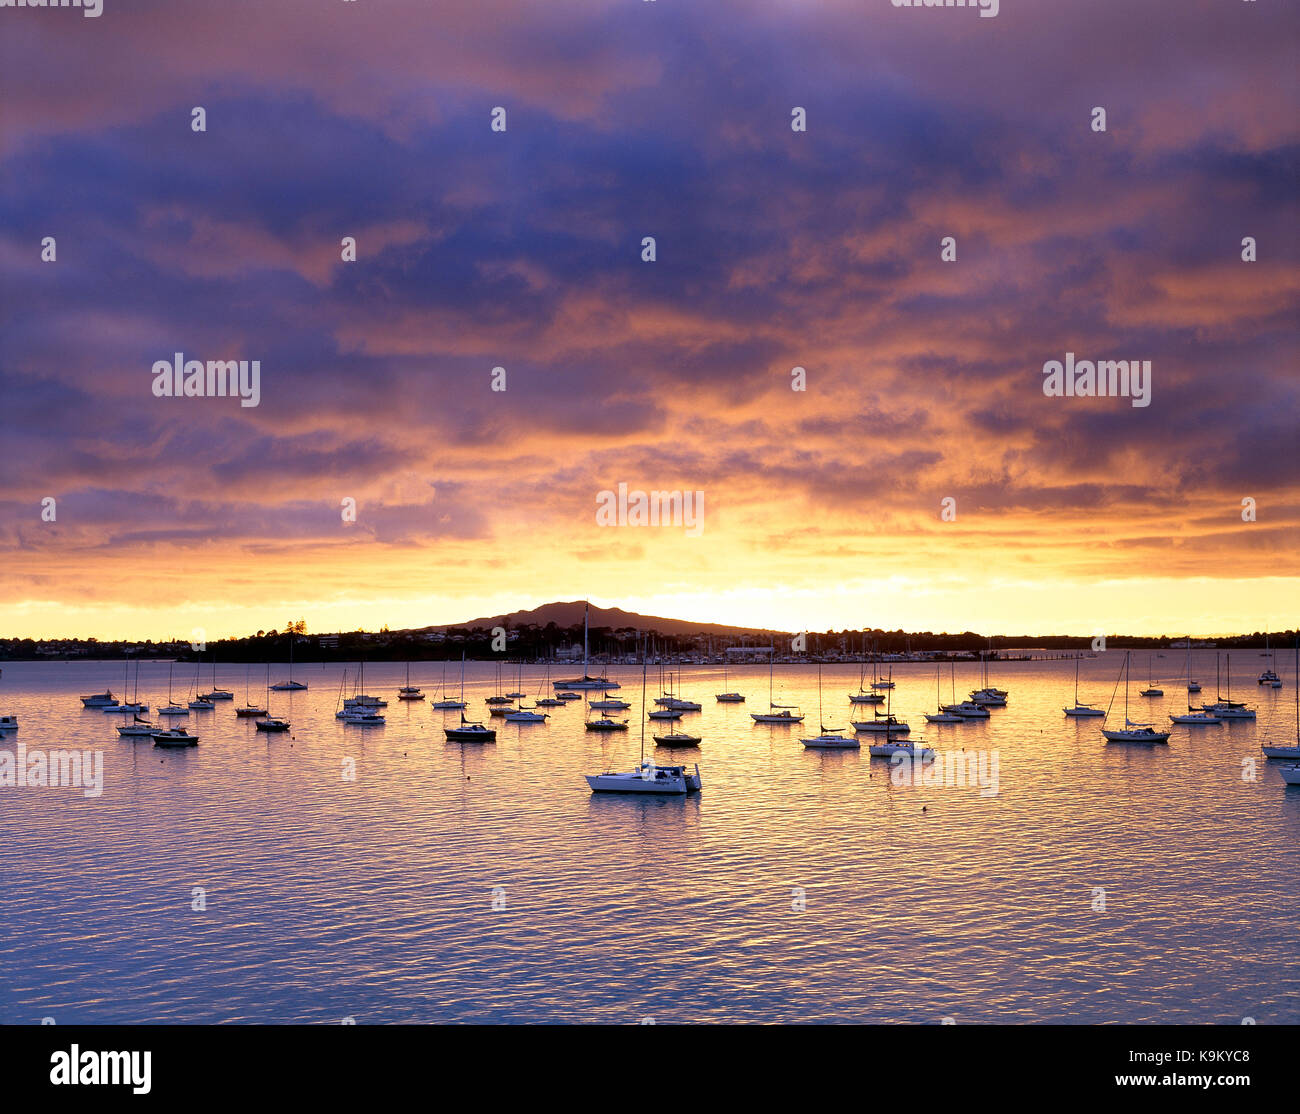 New Zealand. North Island. Auckland. Rangitoto. Devonport. Harbour view ith moored yachts at sunrise. - Stock Image